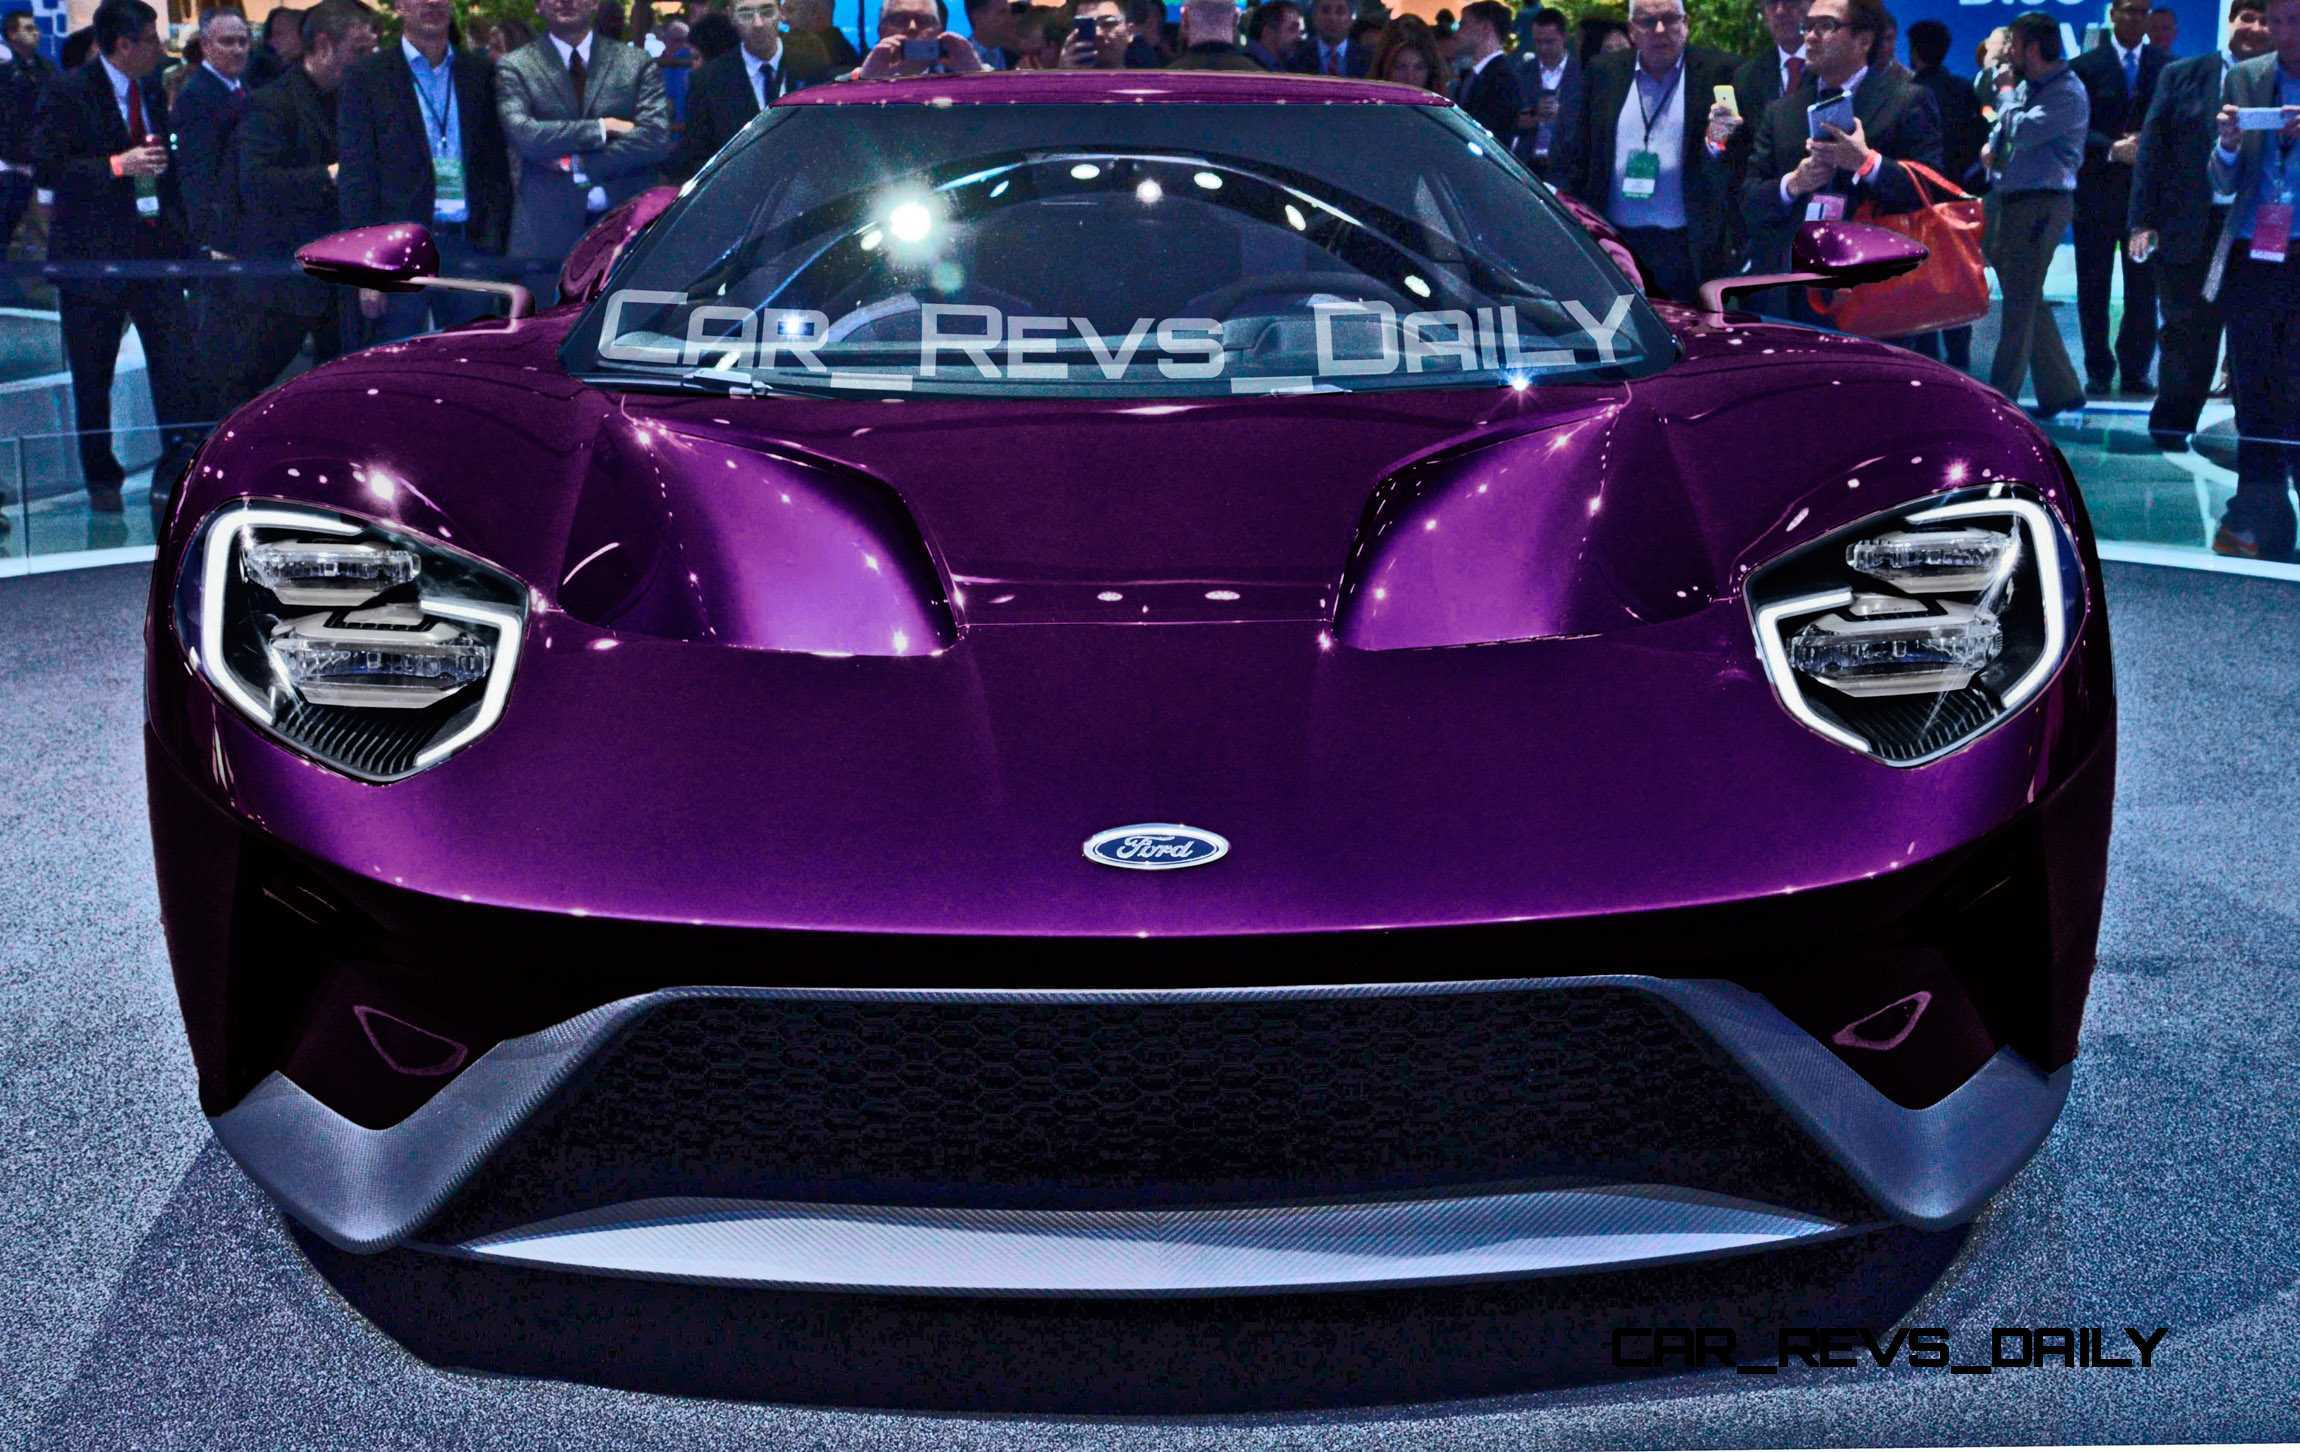 New Ford Car >> 2017 Ford GT - Digital Colorizer